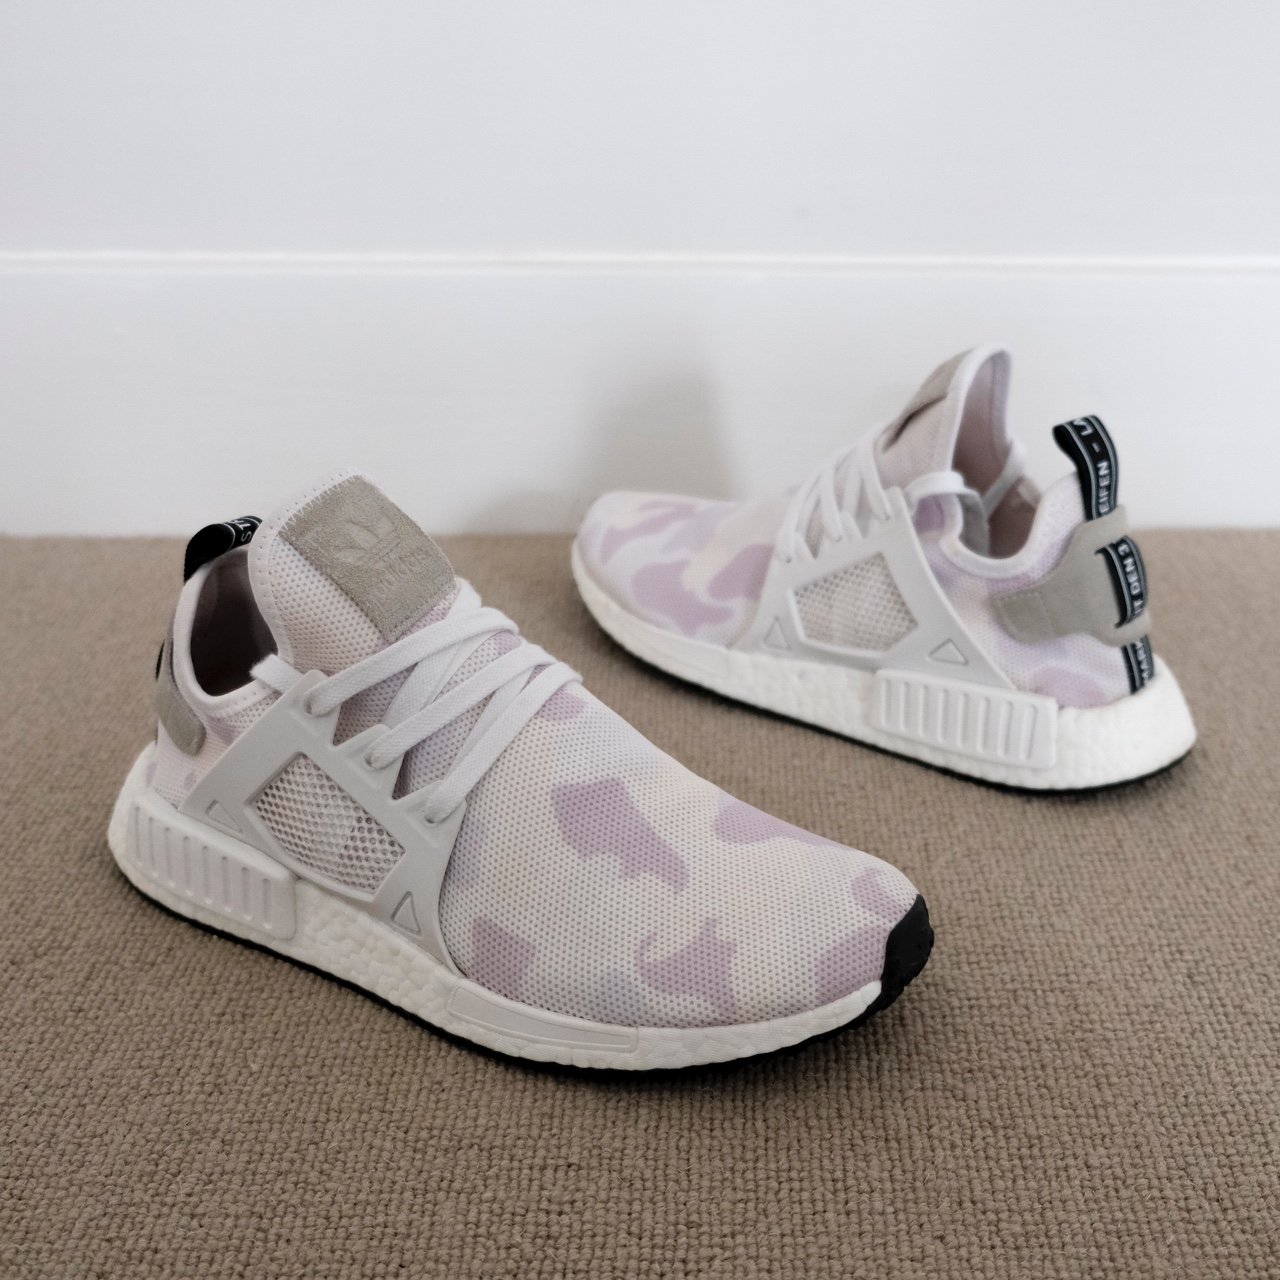 timeless design 9b8d7 40768 Adidas NMD XR1 white camo. Used but still have... - Depop